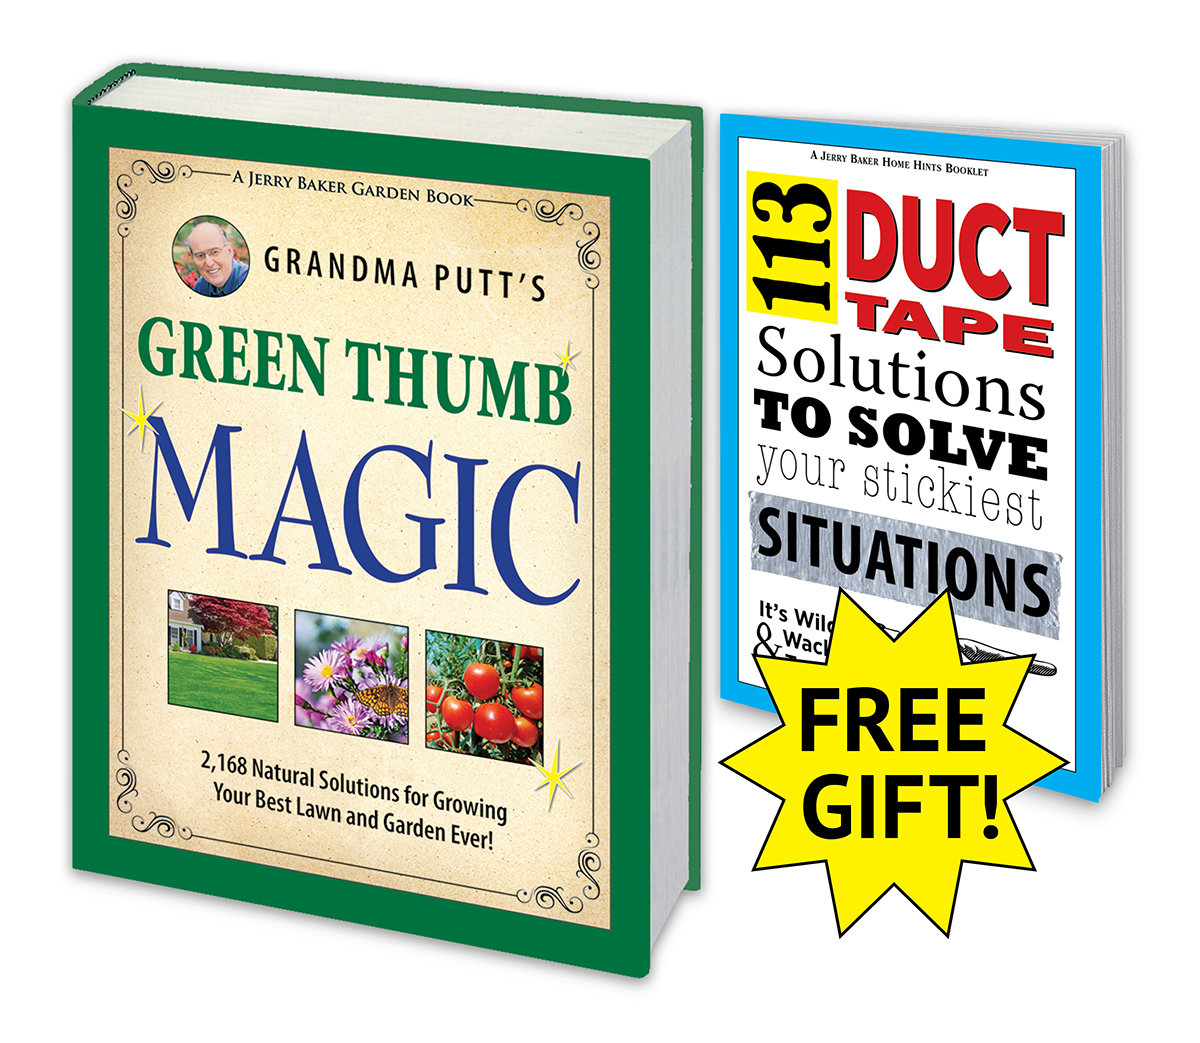 Grandma Putt's Green Thumb Magic